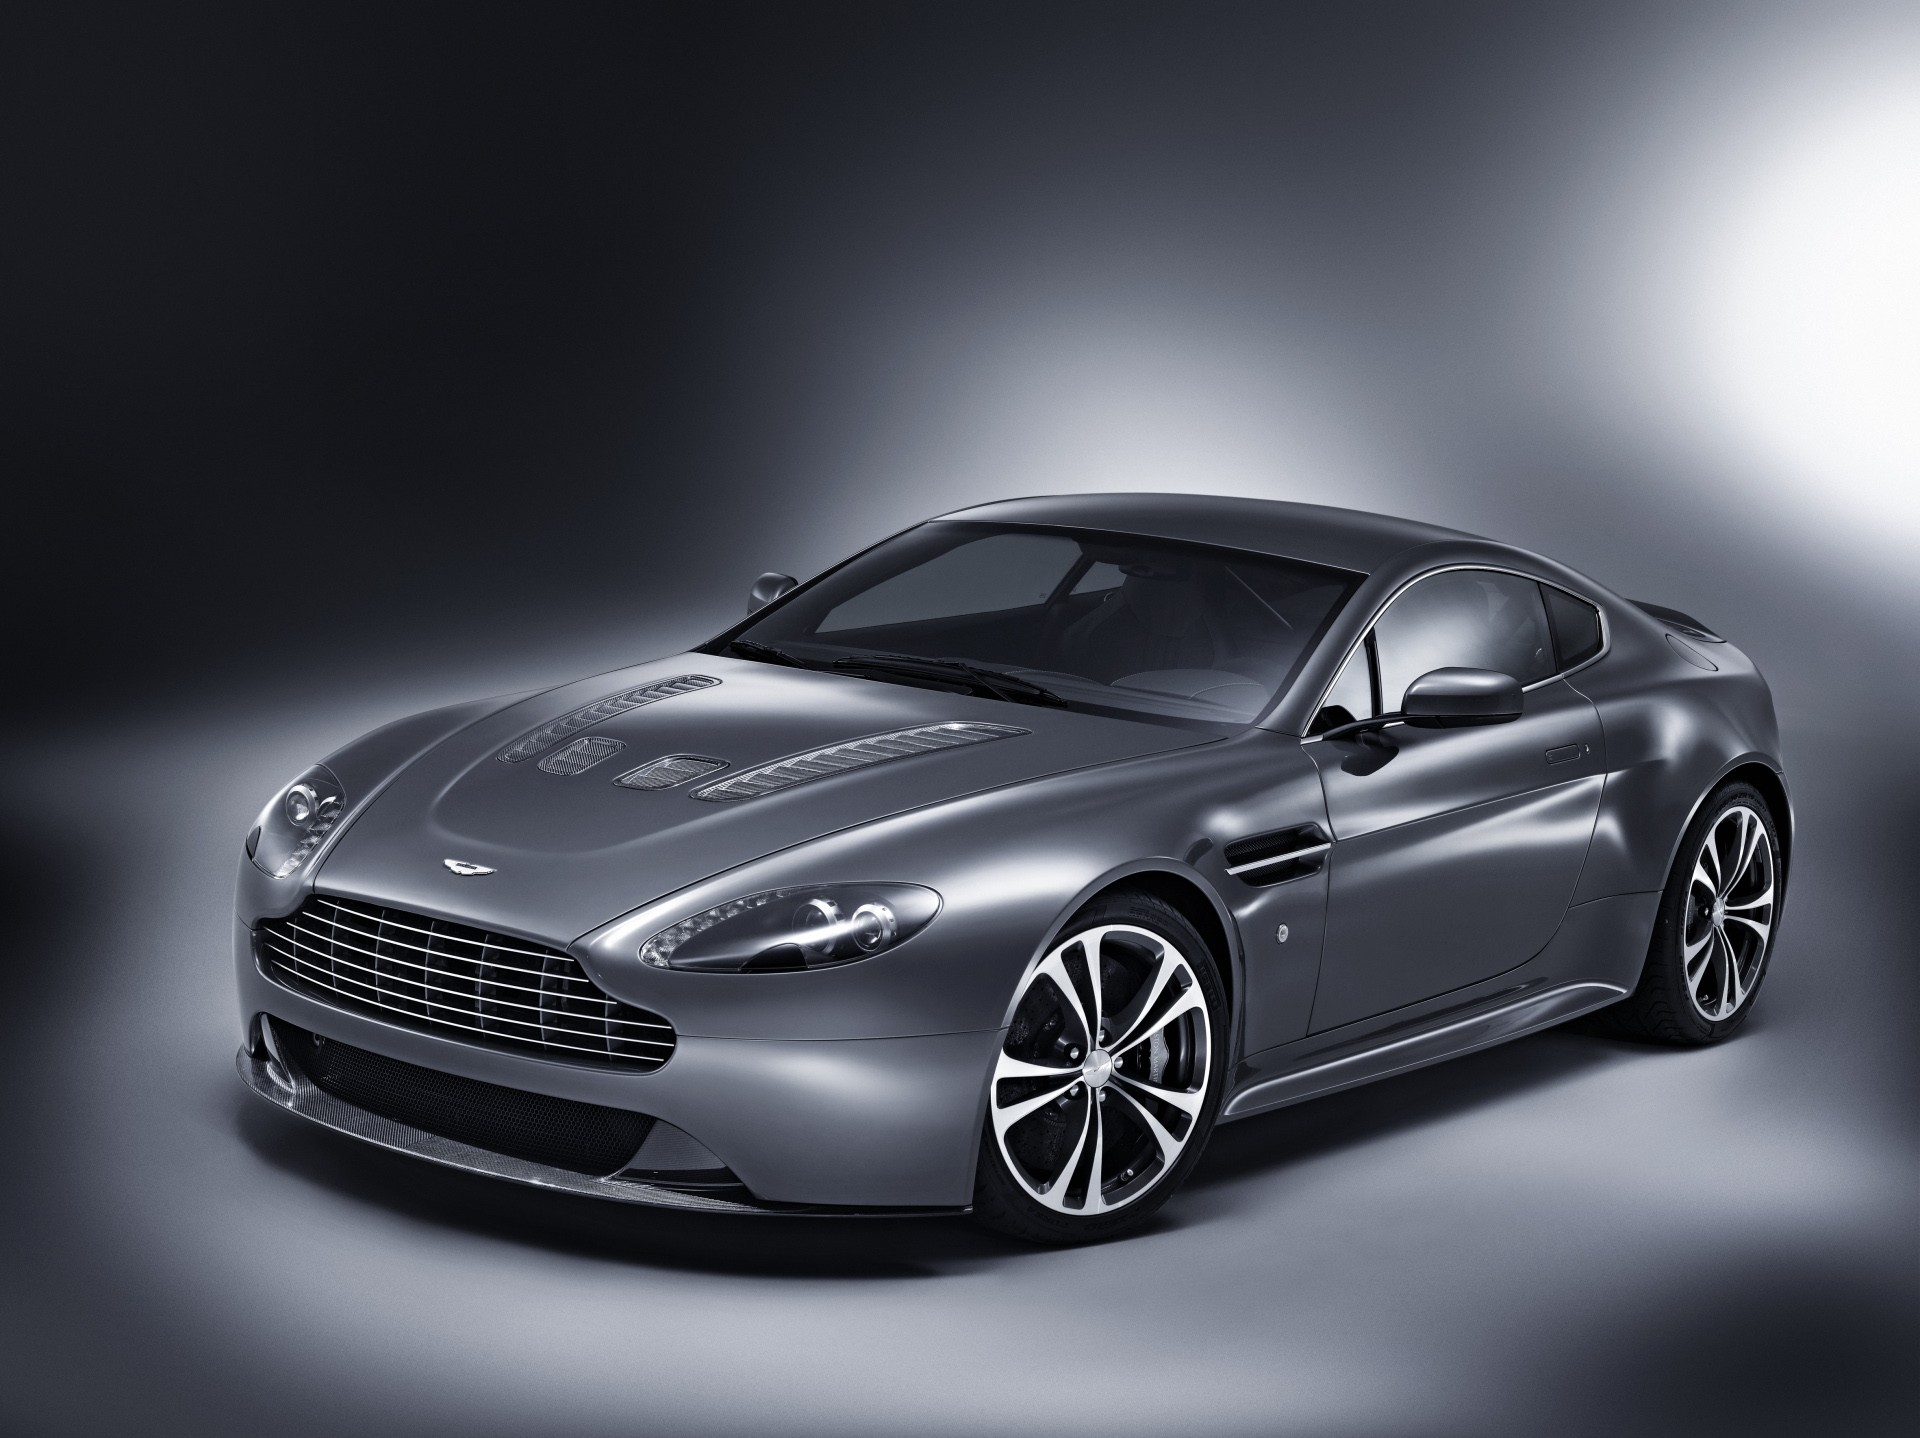 Aston Martin Db Large Wallpapers Download HQ Backgrounds HD 1920x1438